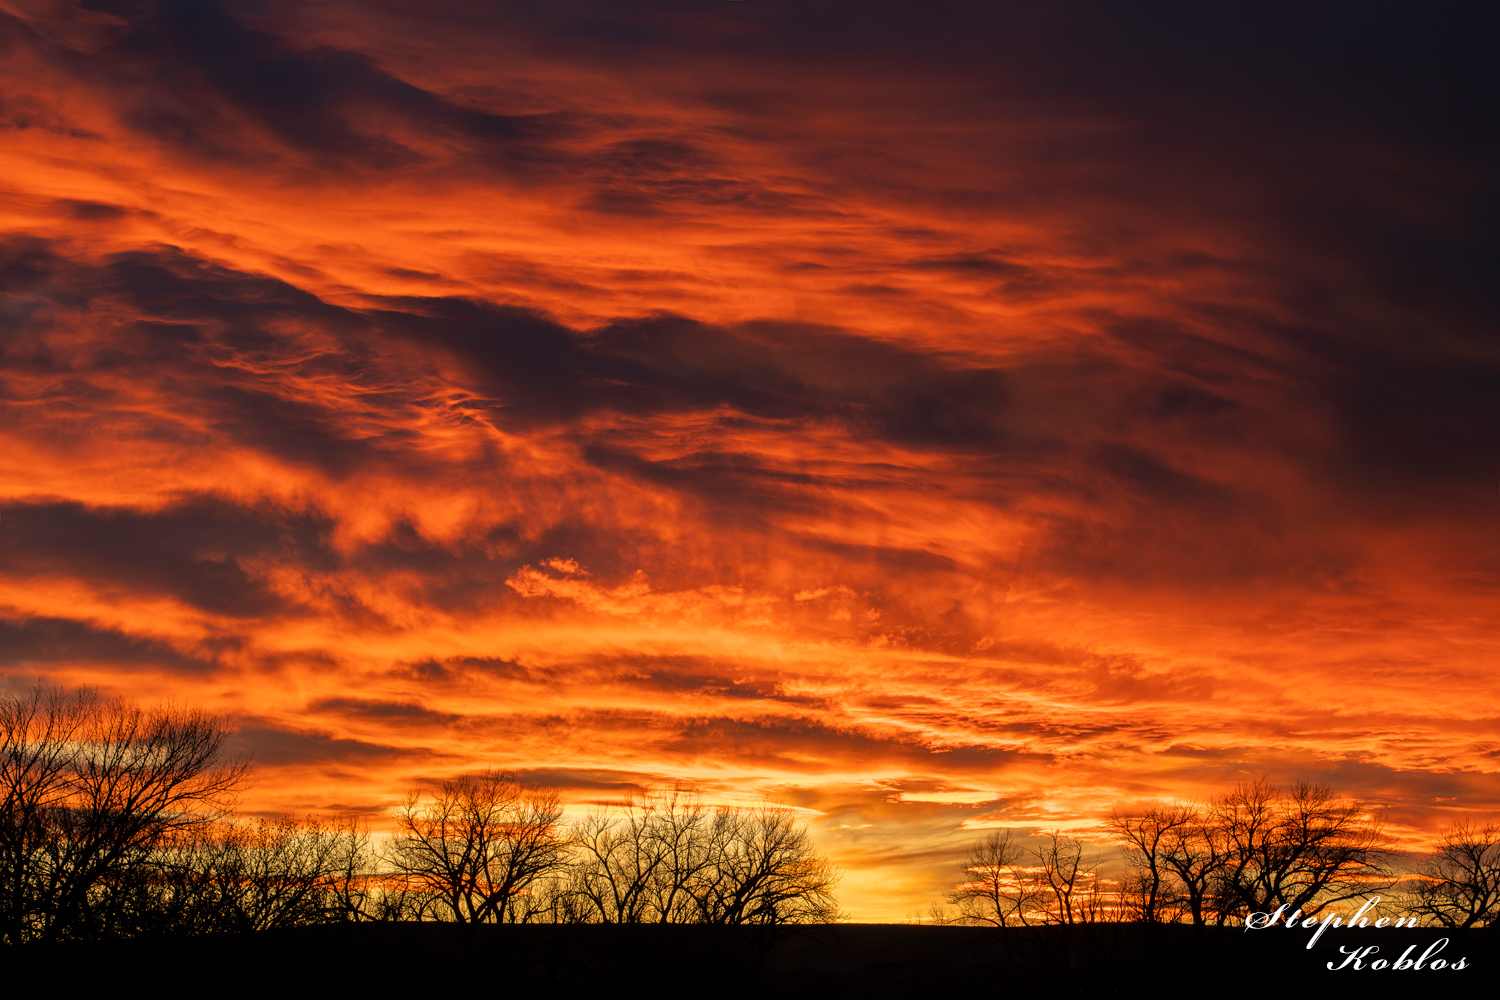 Sunset above the eastern plains. Limited Edition of 100